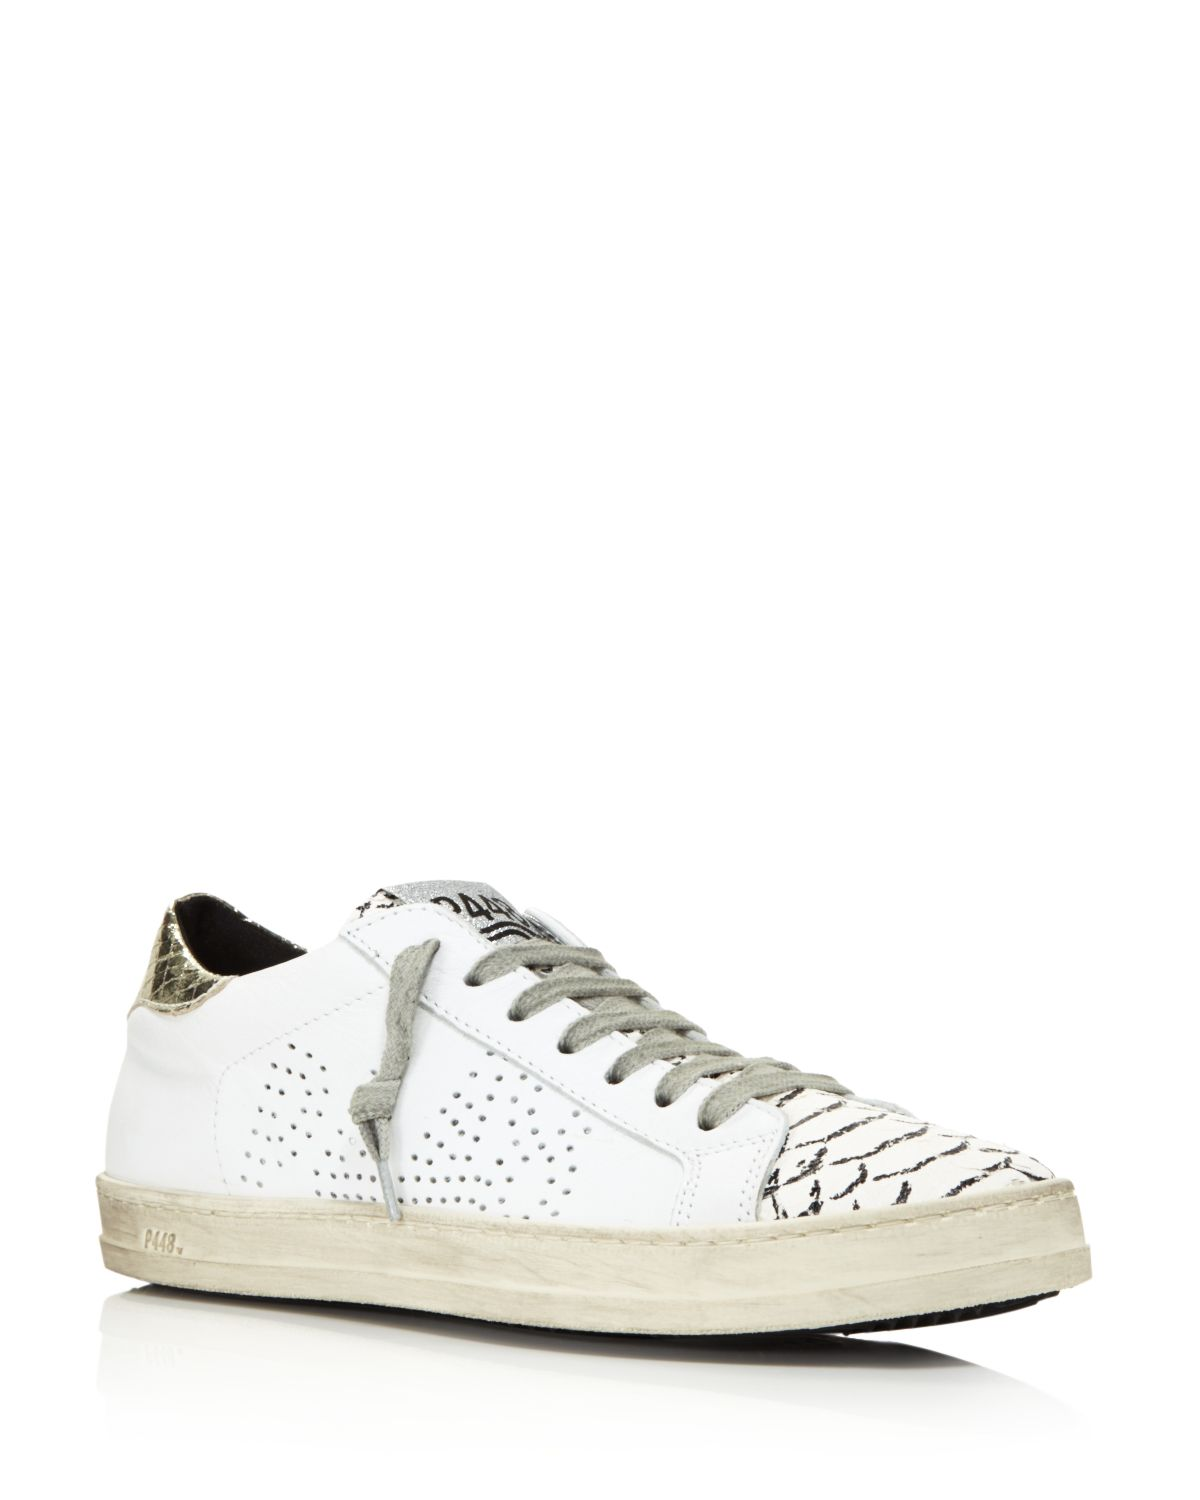 P448 Women's John Perforated Leather & Snake Print Lace Up Sneakers